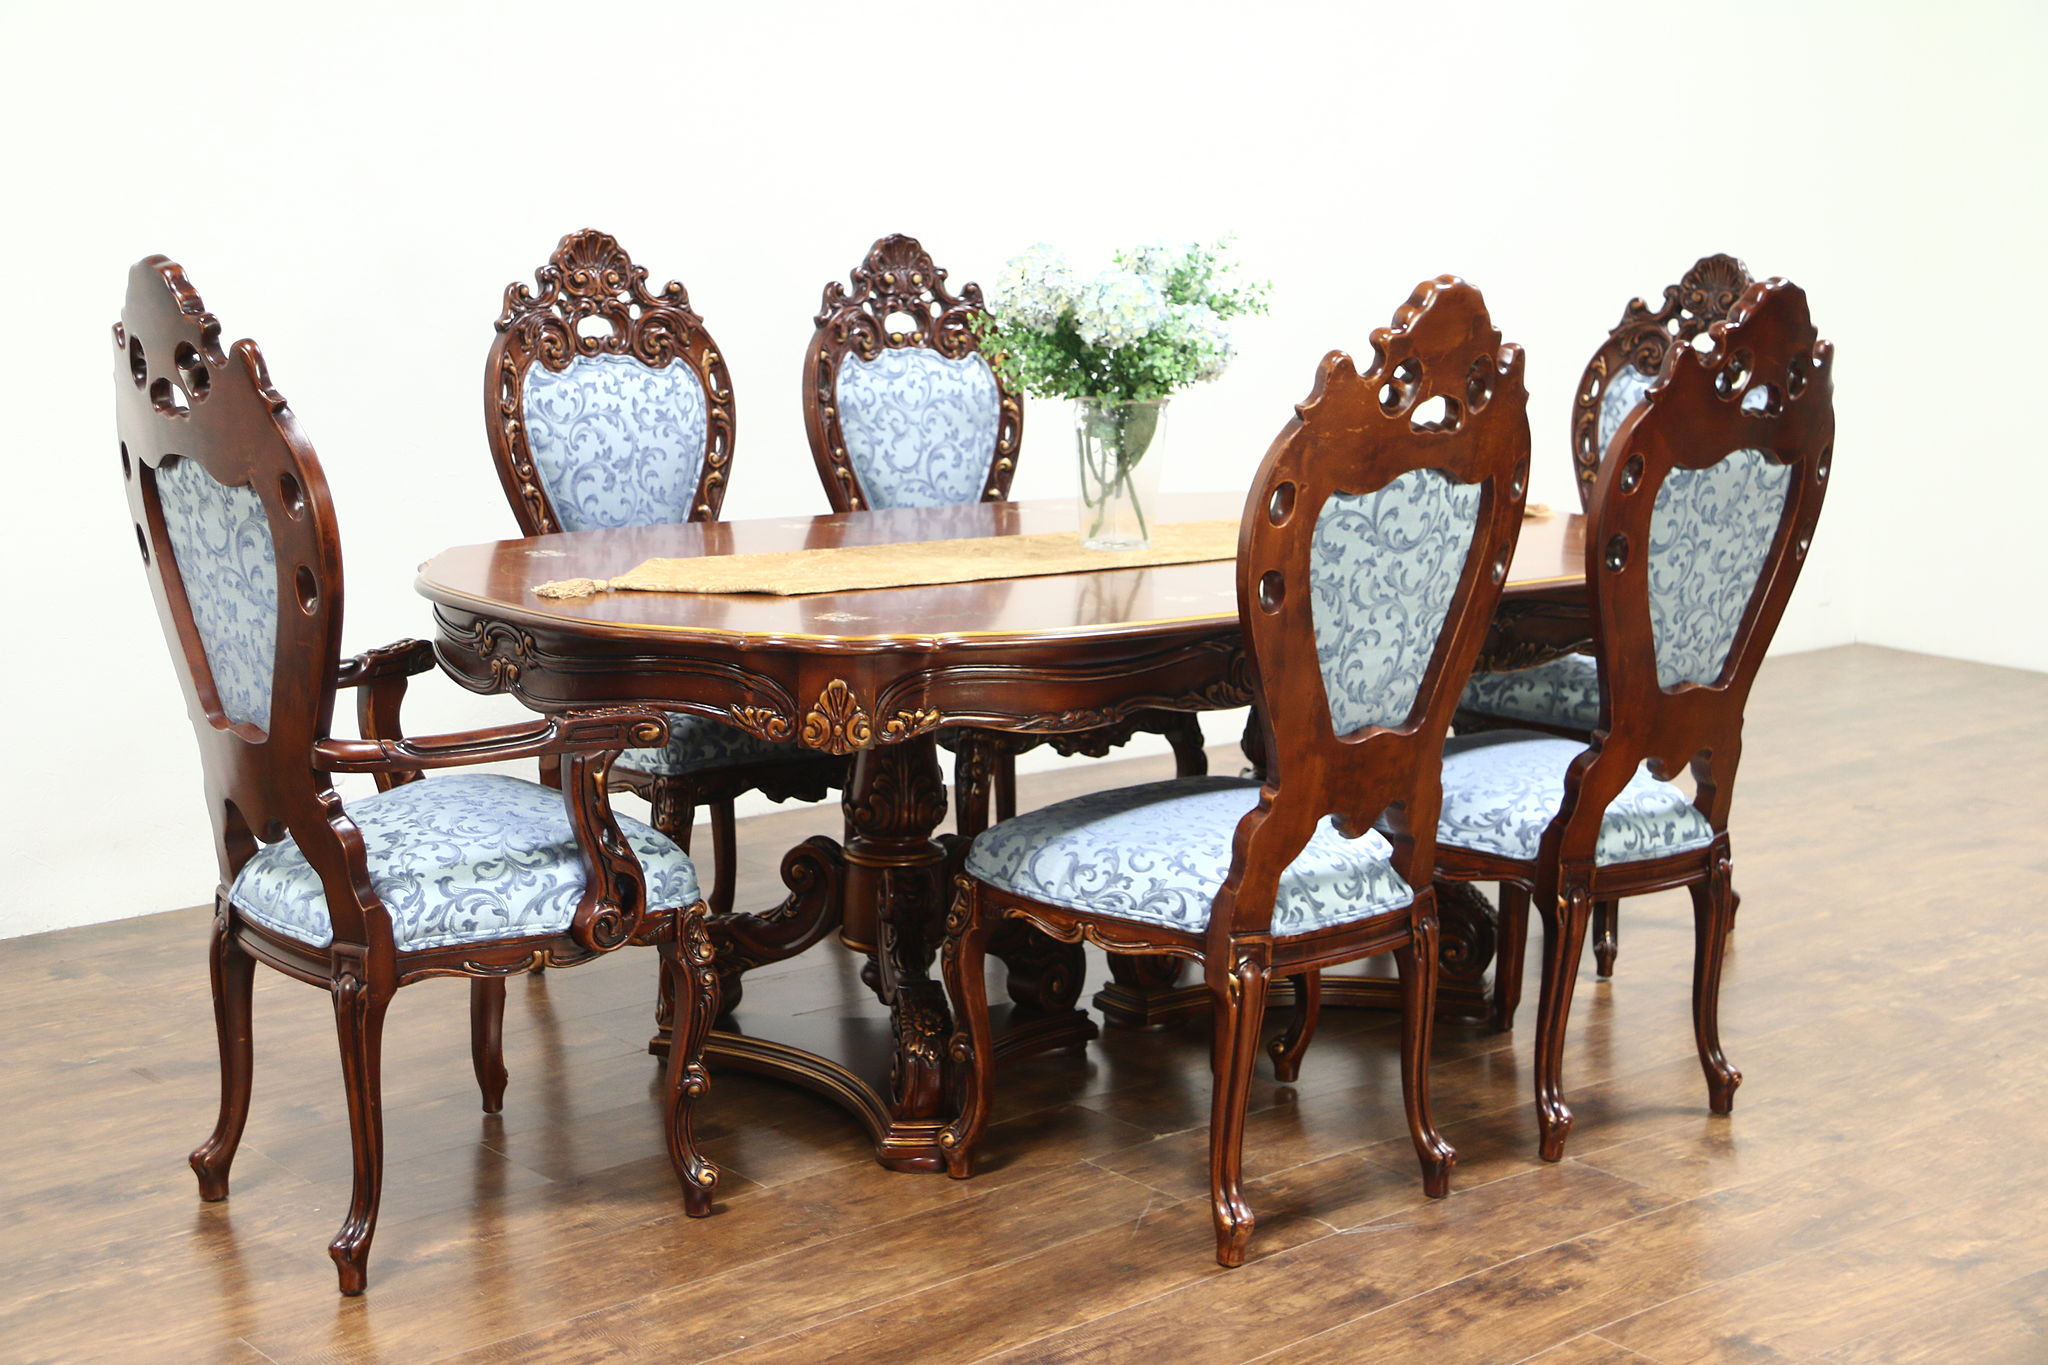 Baroque Carved Cherry Vintage Dining Set Table 6 Chairs Signed Montalban Photo